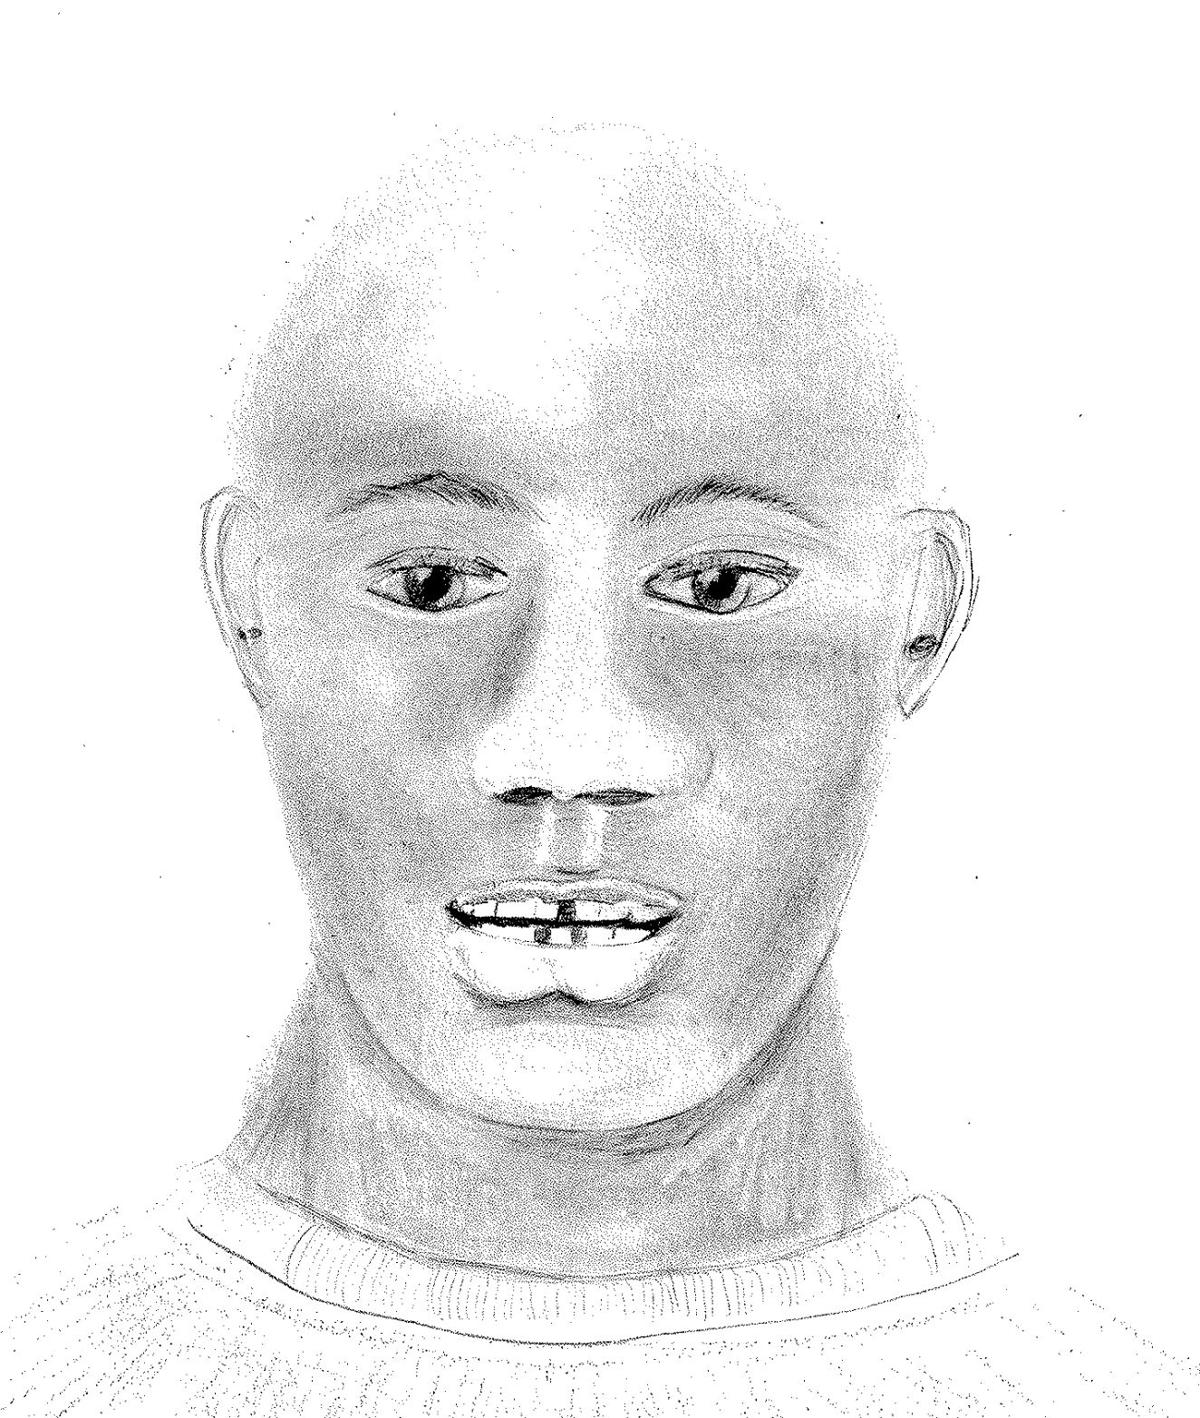 Updated sketch of rape suspect released